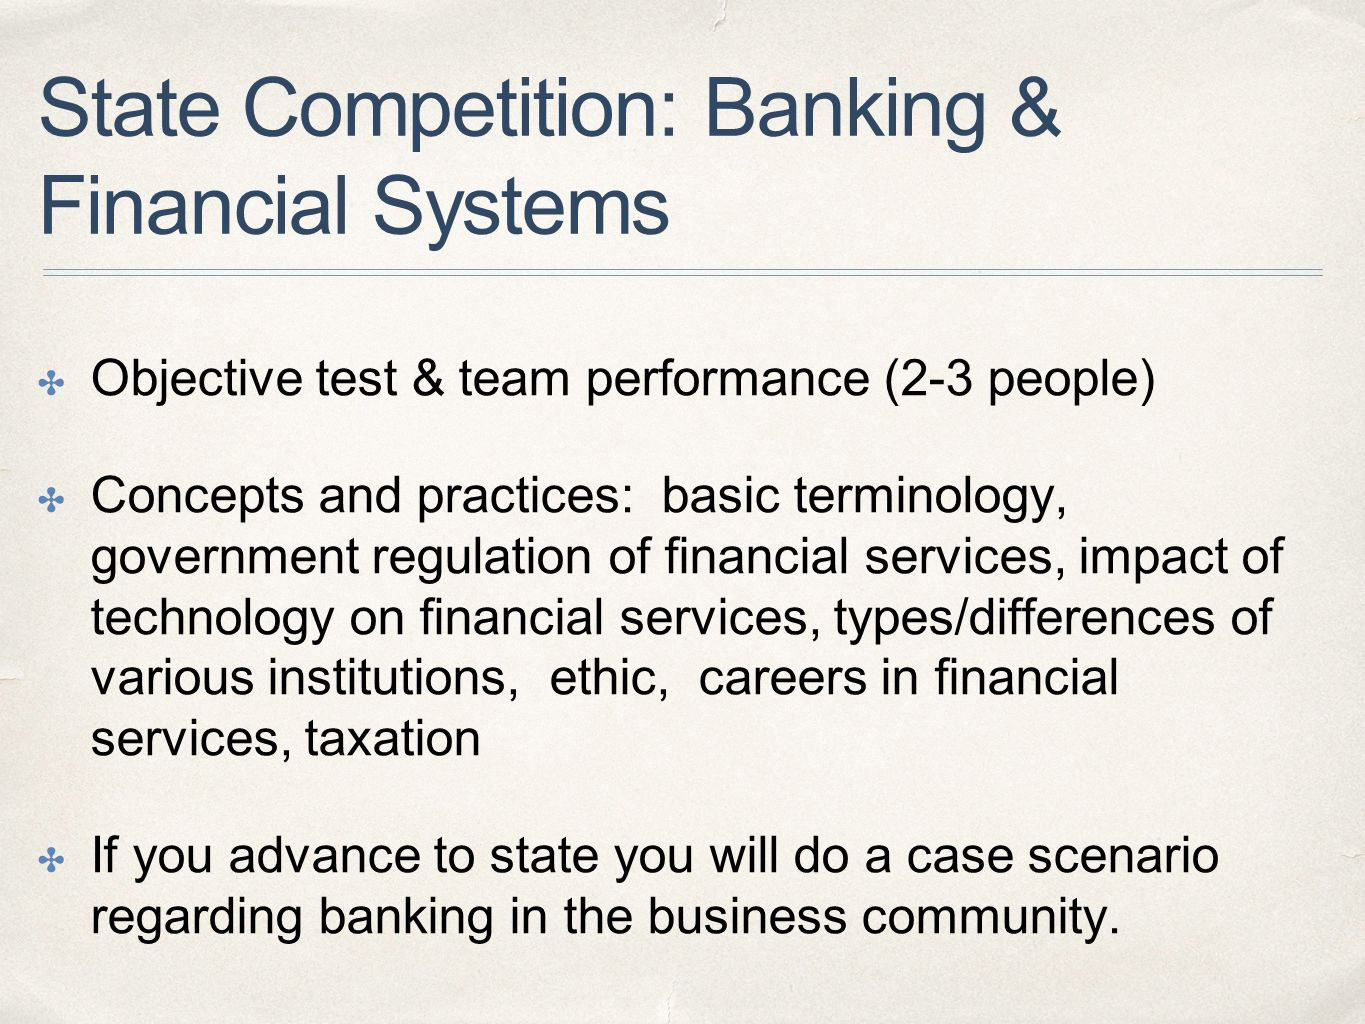 State Competition: Banking & Financial Systems ✤ Objective test & team performance (2-3 people) ✤ Concepts and practices: basic terminology, government regulation of financial services, impact of technology on financial services, types/differences of various institutions, ethic, careers in financial services, taxation ✤ If you advance to state you will do a case scenario regarding banking in the business community.